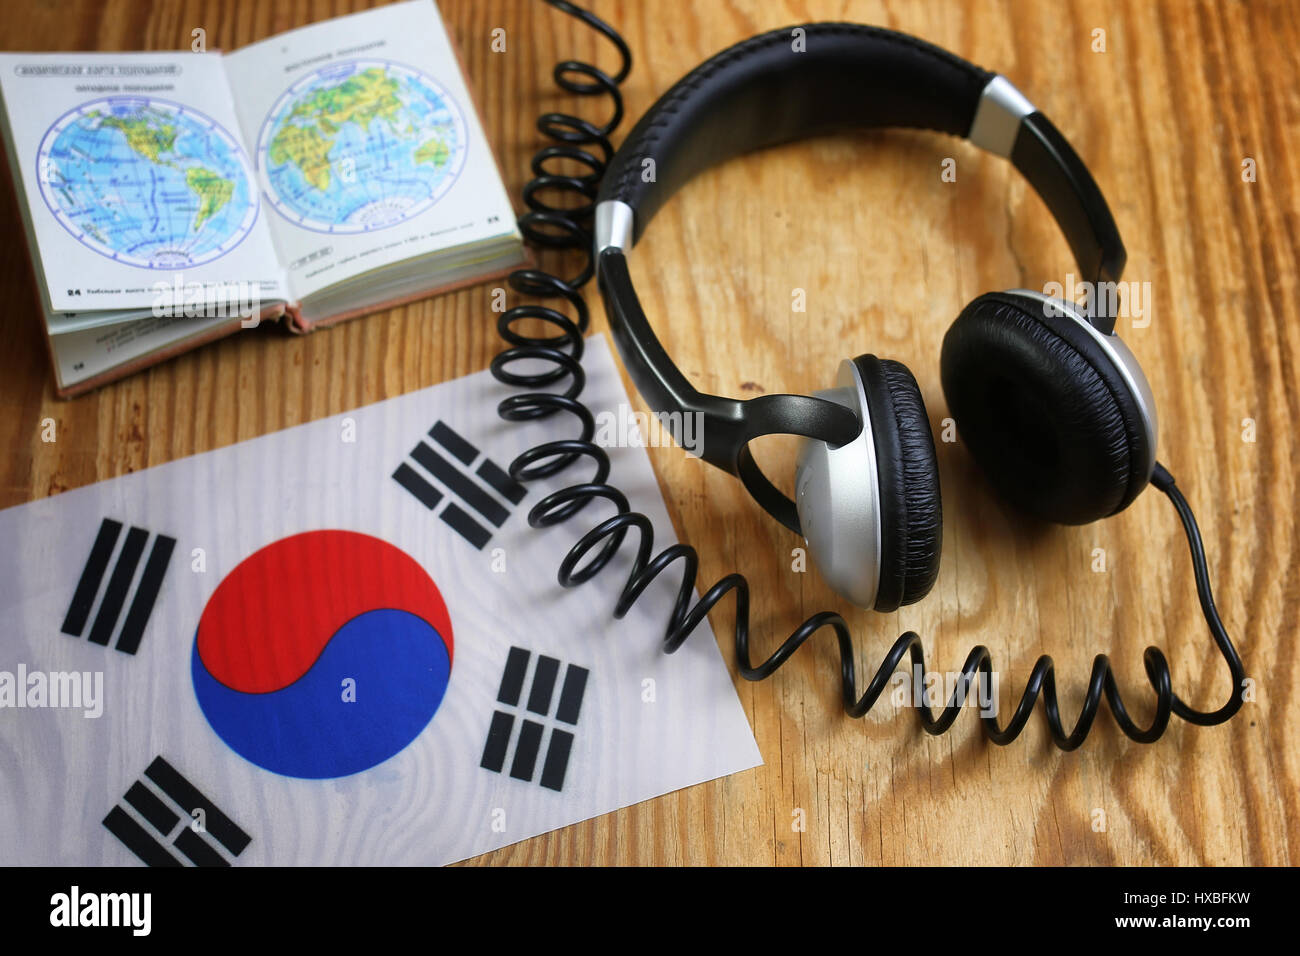 Headphone Symbol Stock Photos Images Alamy Headseet Kw Course Language And Flag On A Table Image